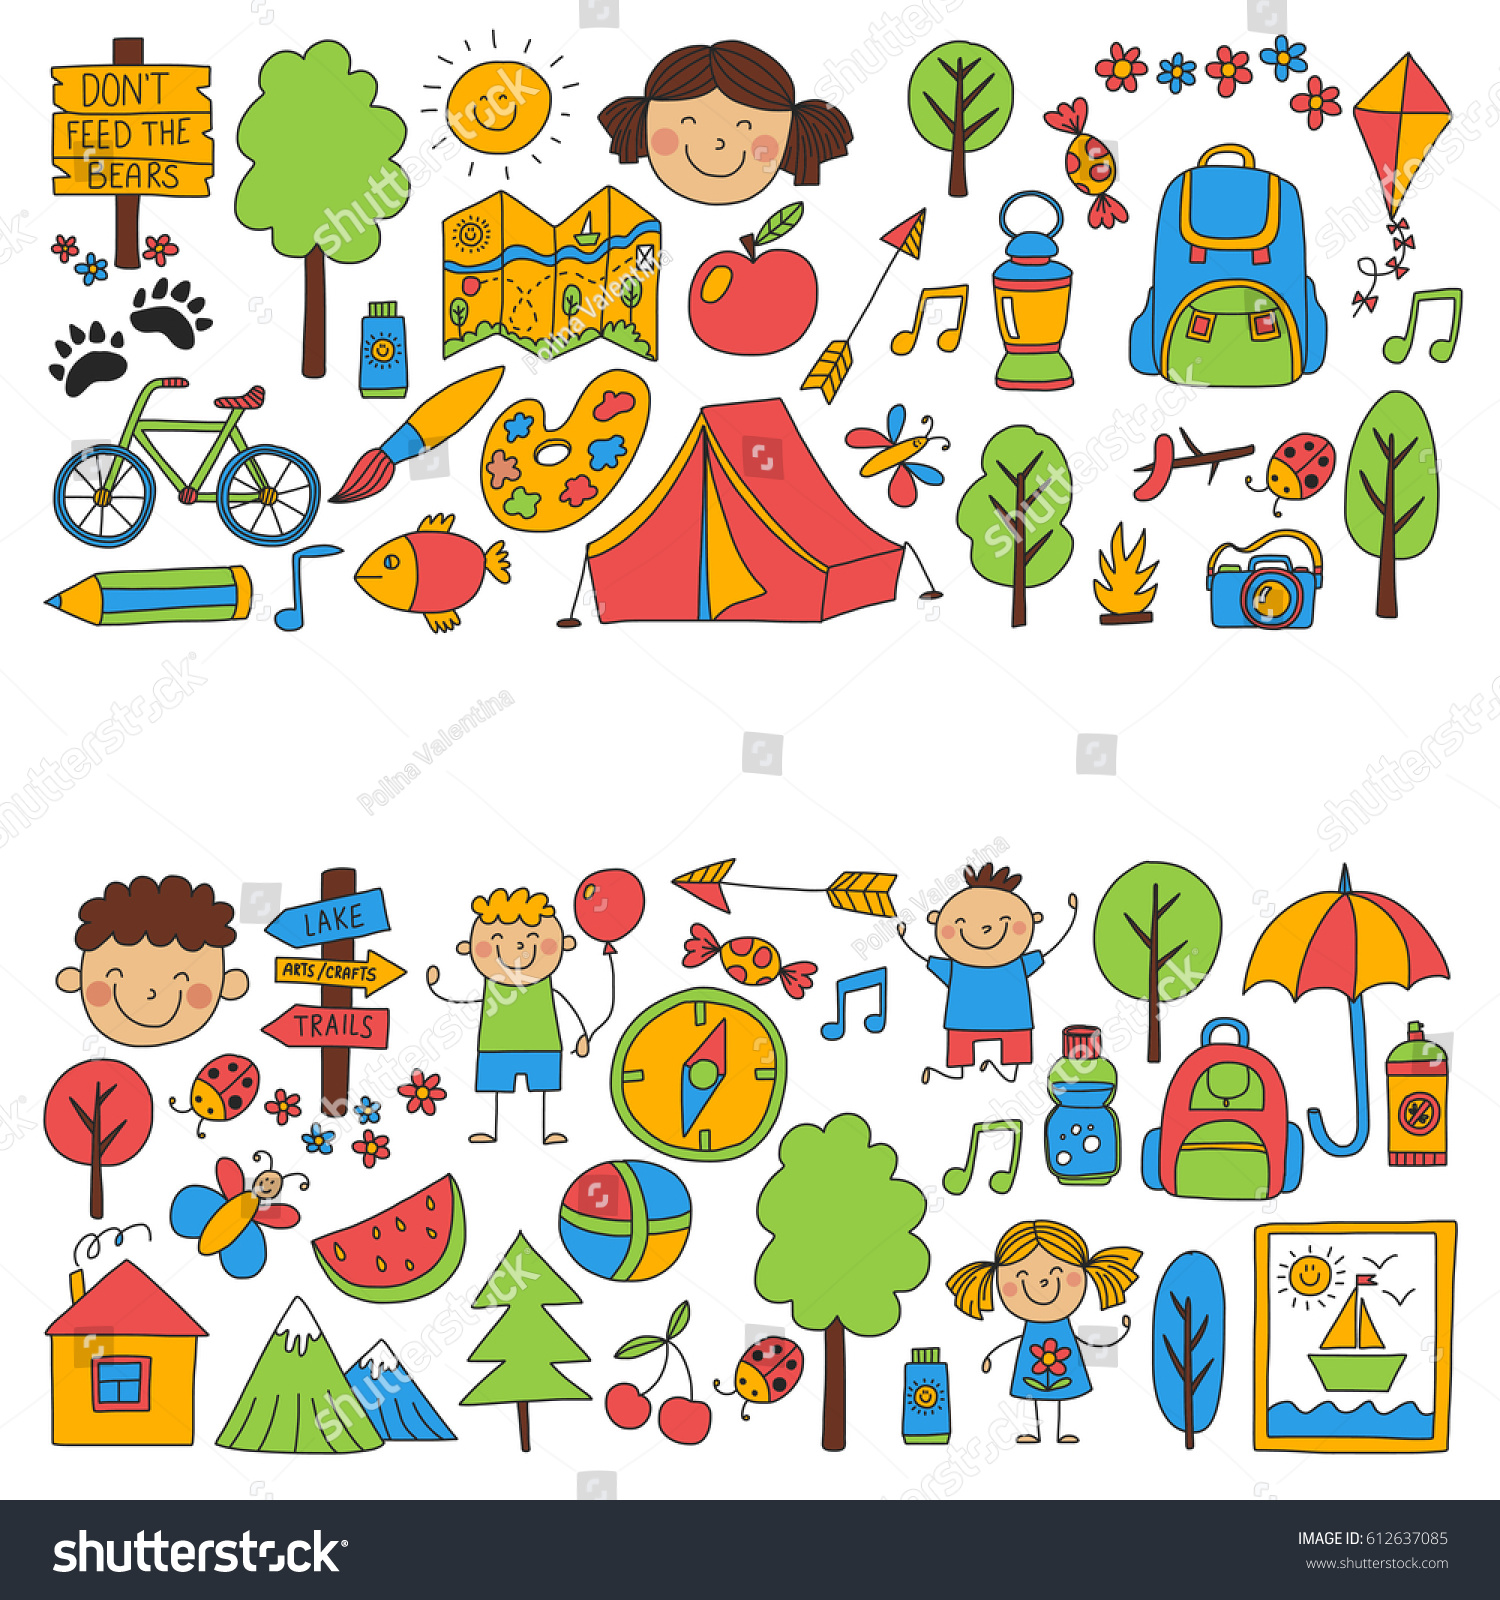 Summer camp children kids camping children stock vector for Fishing camps for kids